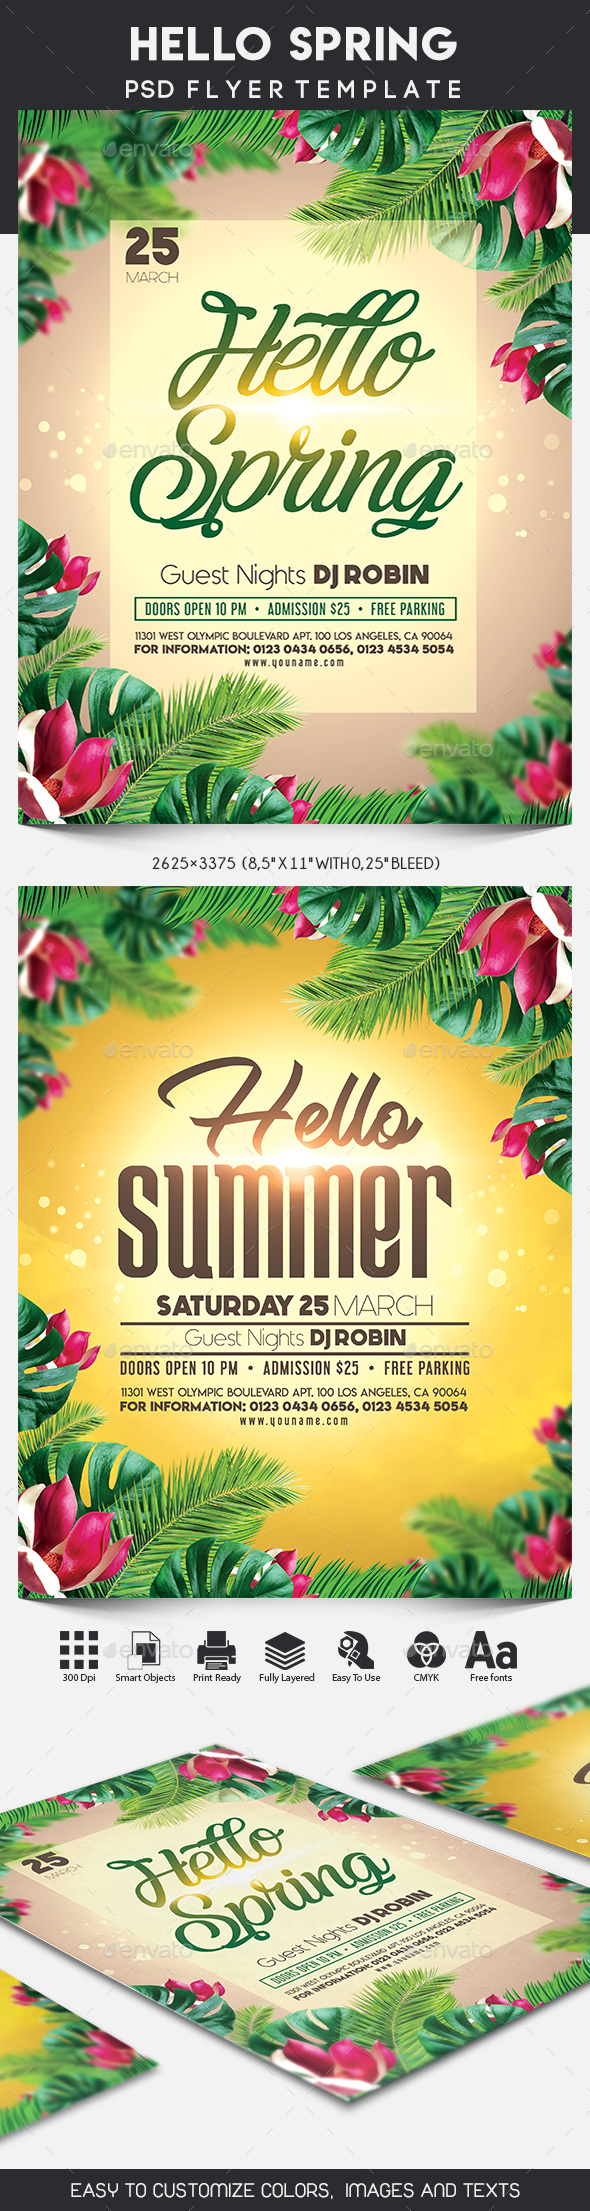 Hello Spring / Hello Summer Flyer Template - Clubs & Parties Events